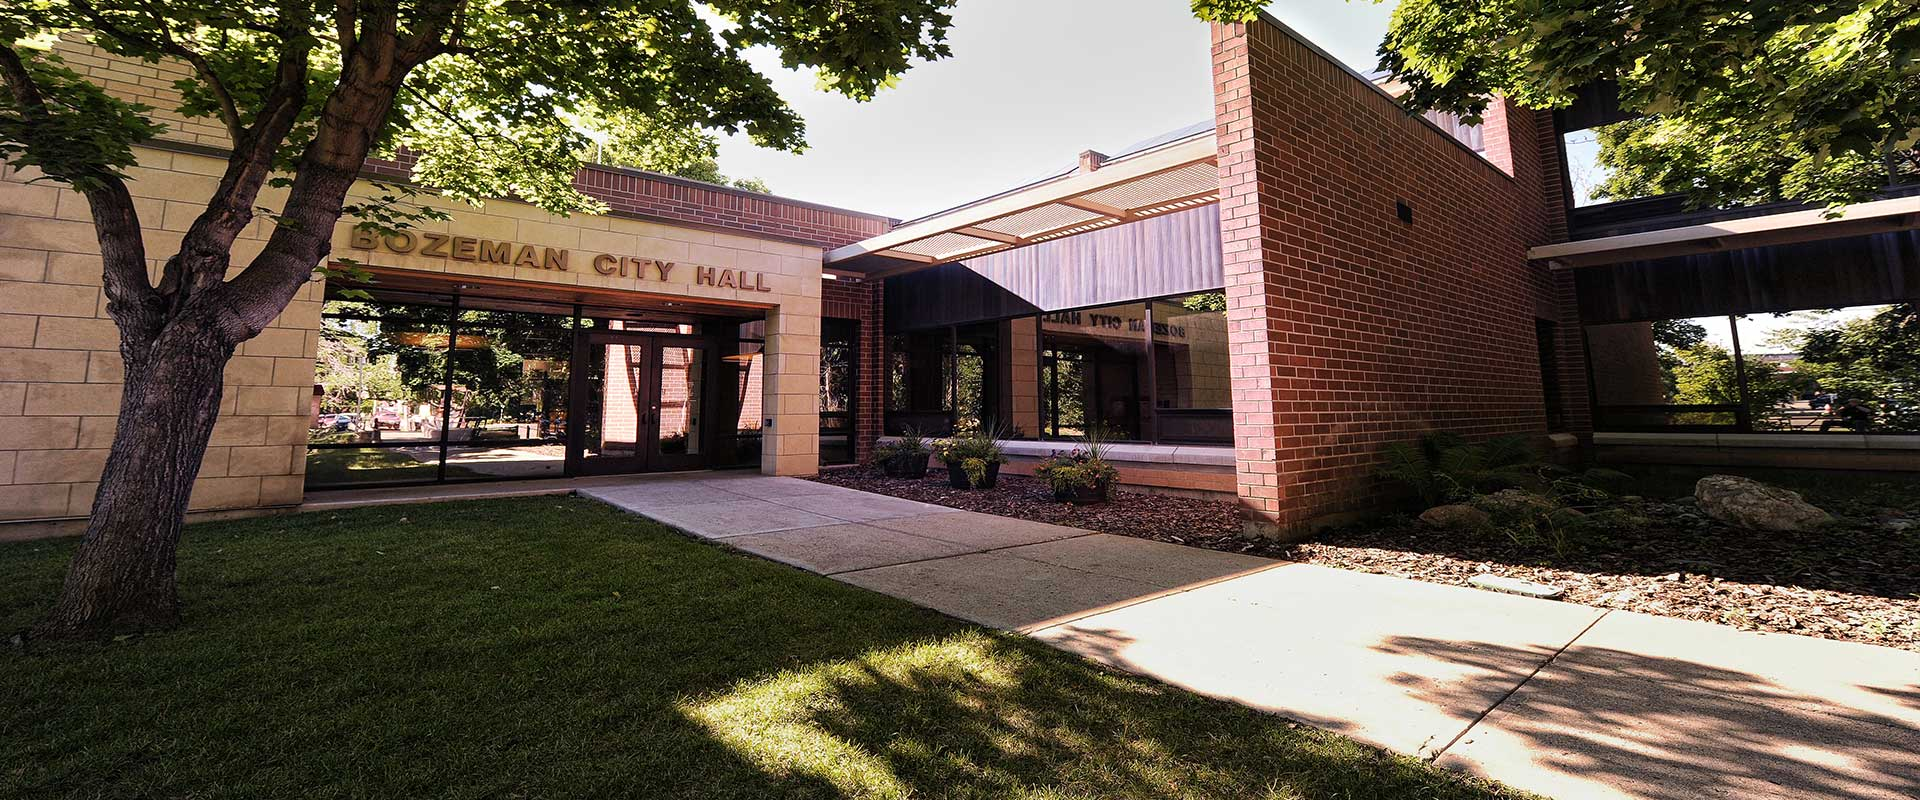 City of Bozeman Hiring banner